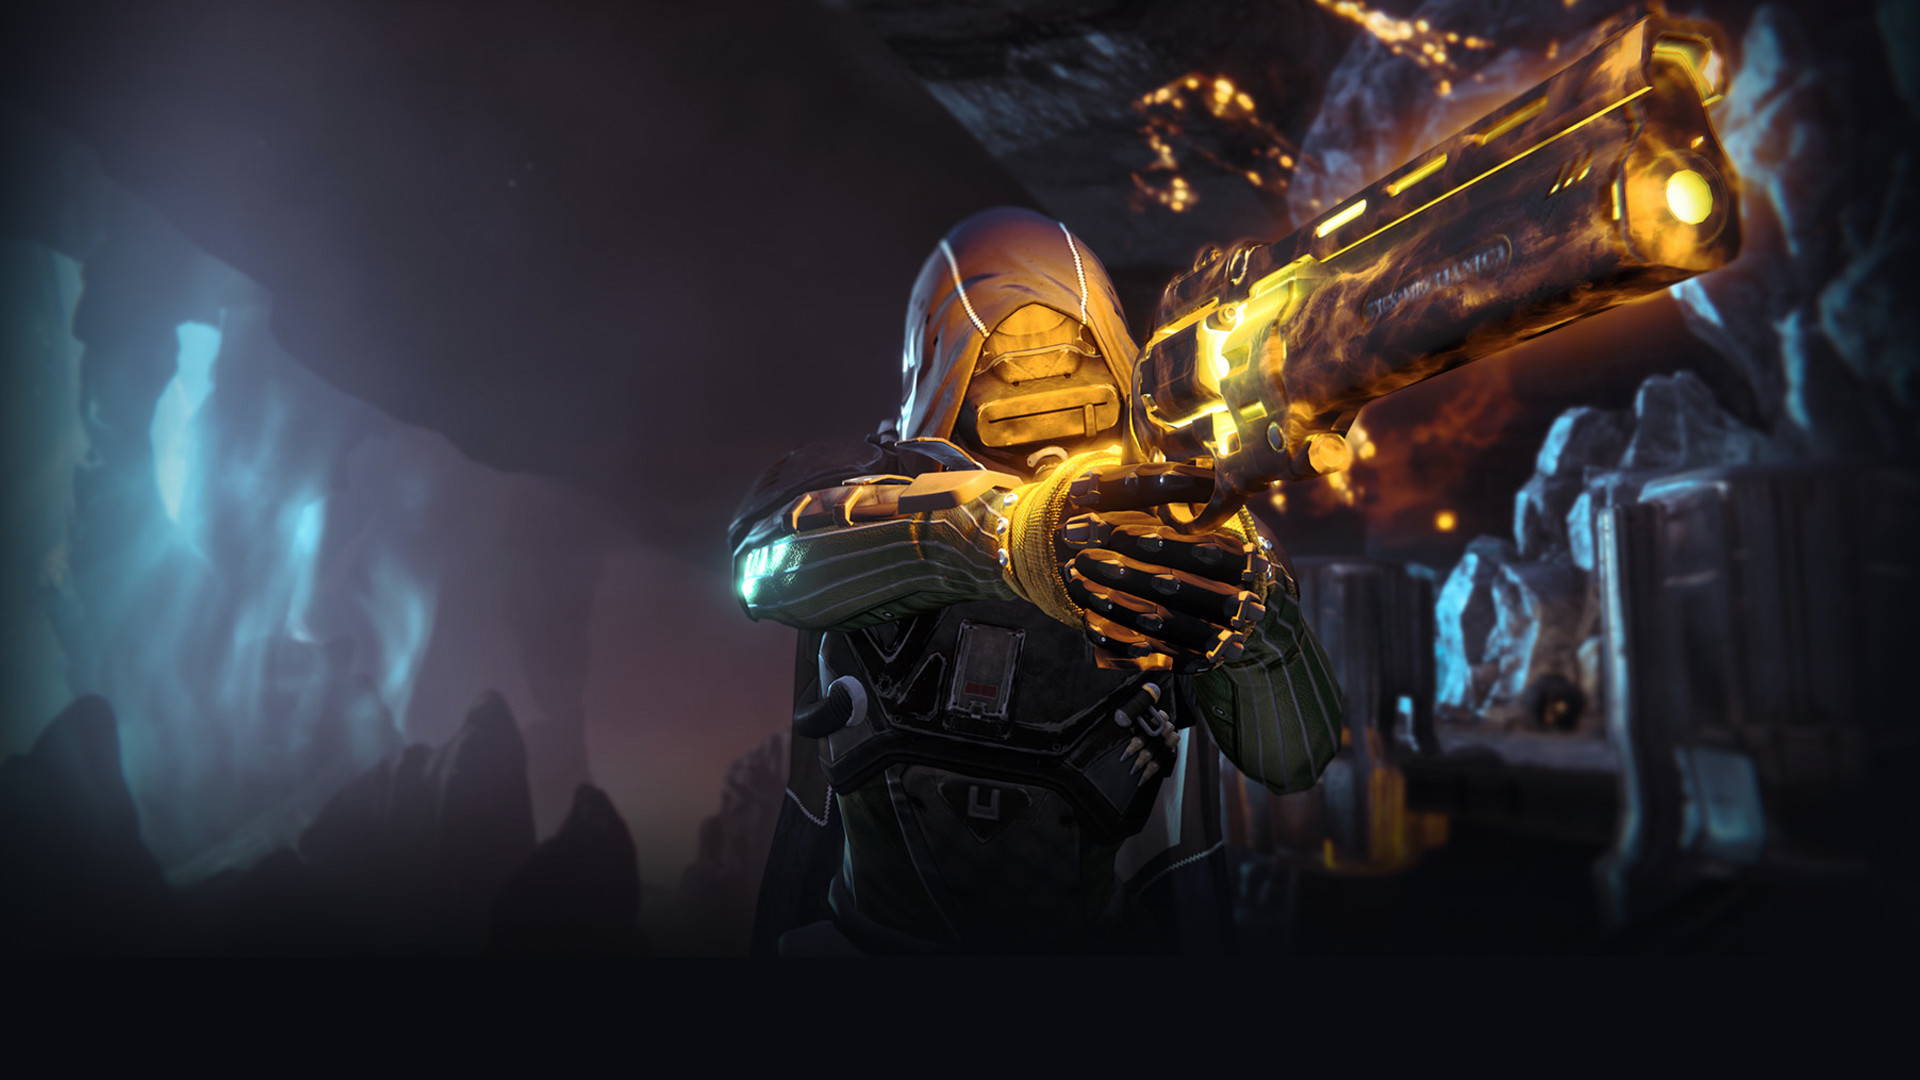 1920x1080 Destiny Bungie Iphone 5 Wallpaper Imac wallpapers